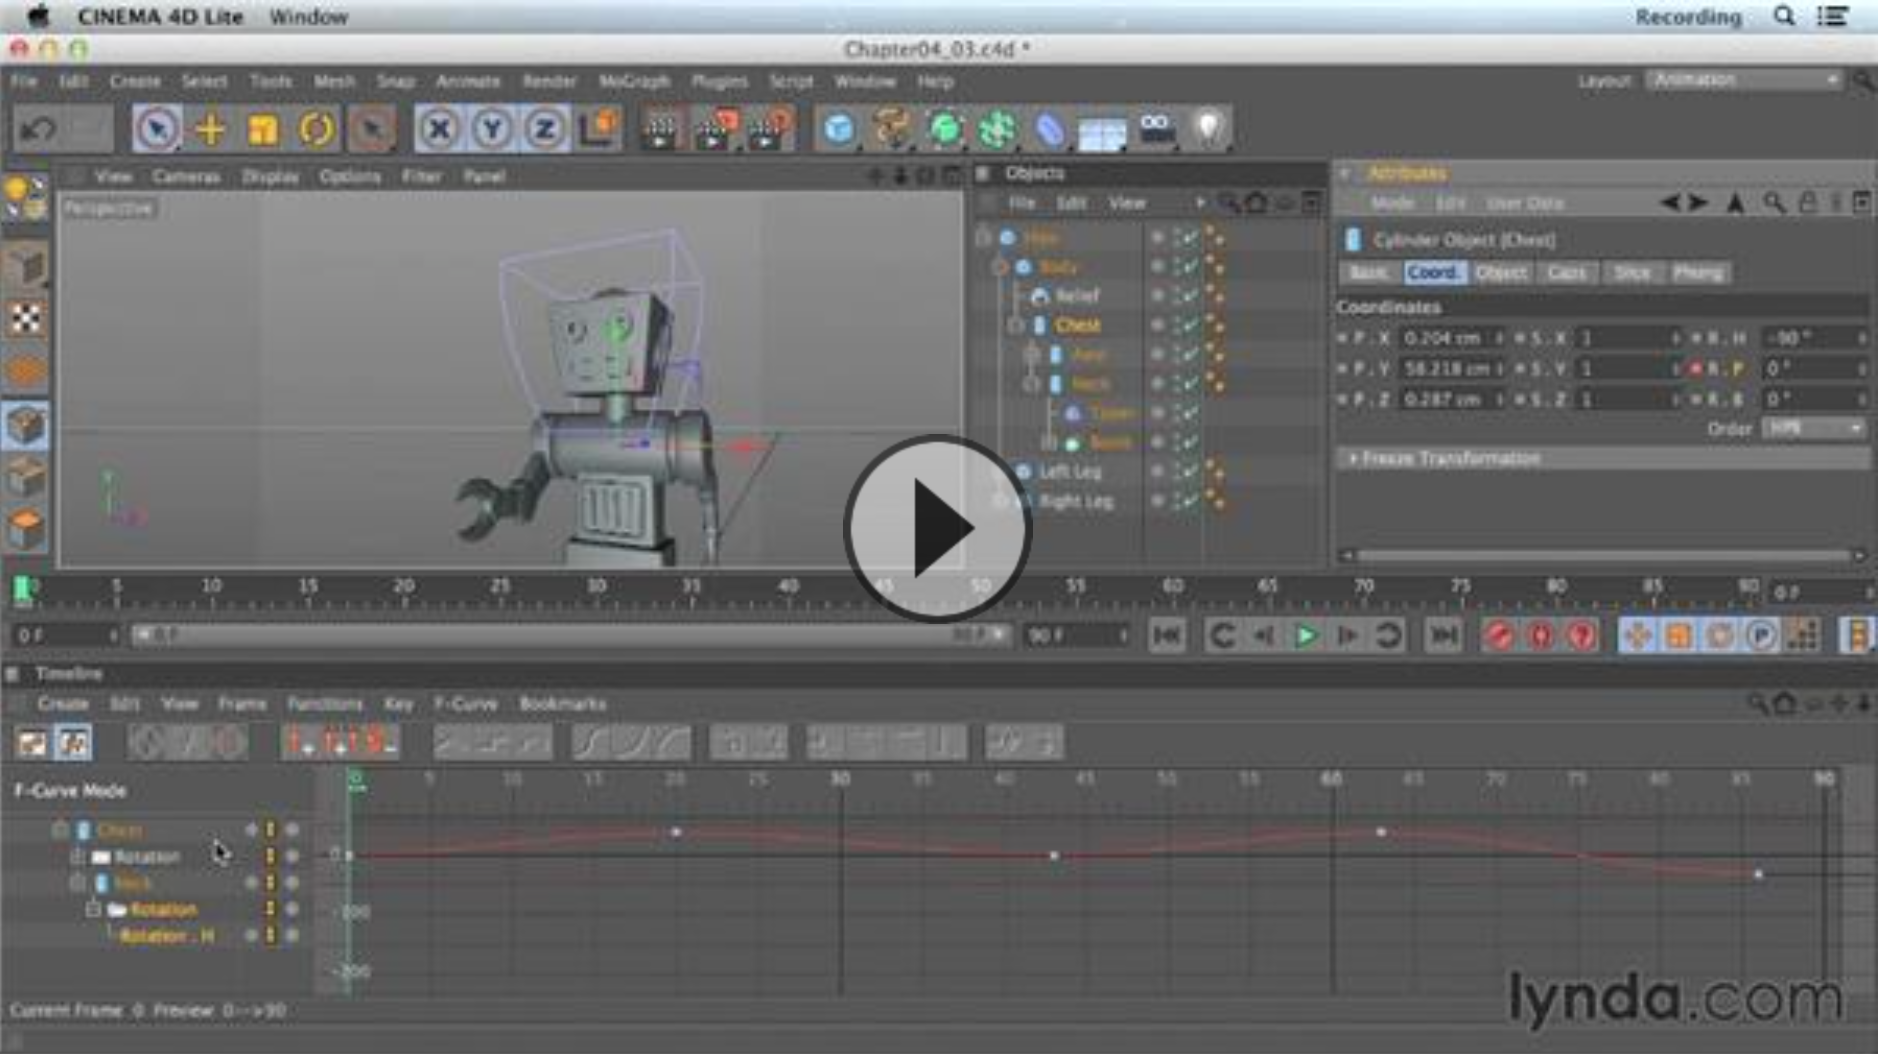 Creating multiple cameras in CINEMA 4D Lite